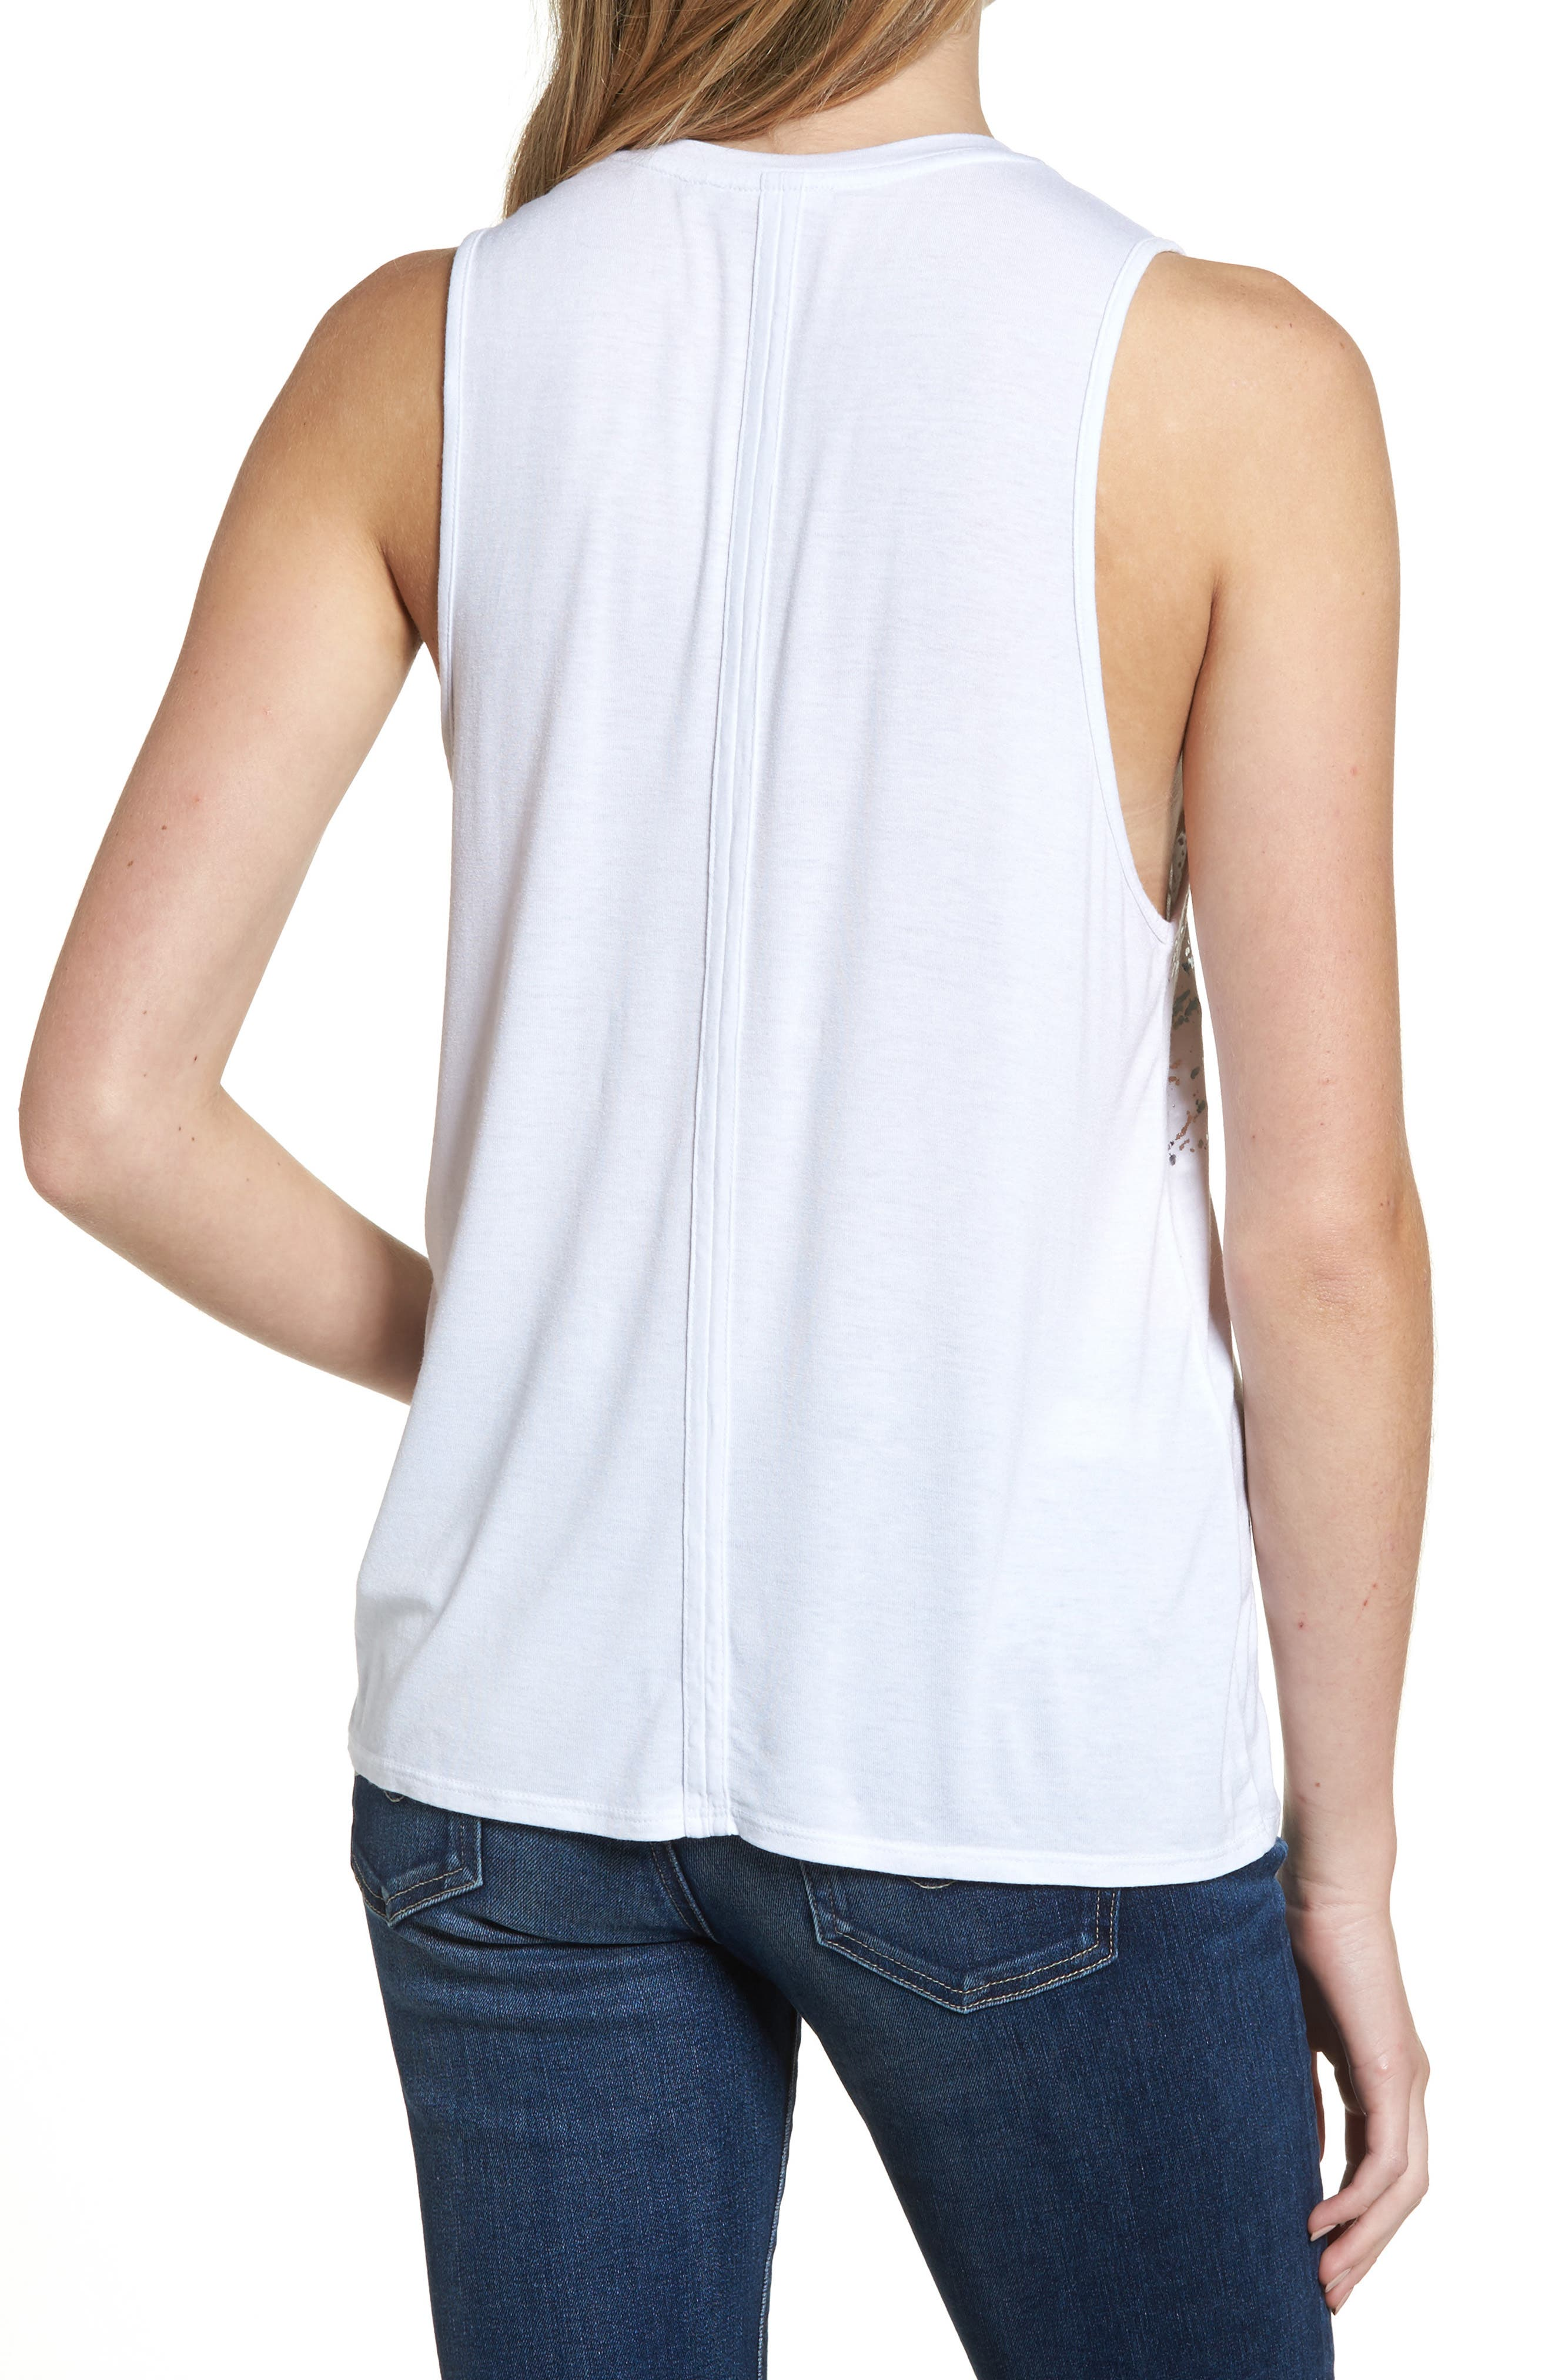 Clio Tank,                             Alternate thumbnail 2, color,                             Distressed Silver Foil/ White